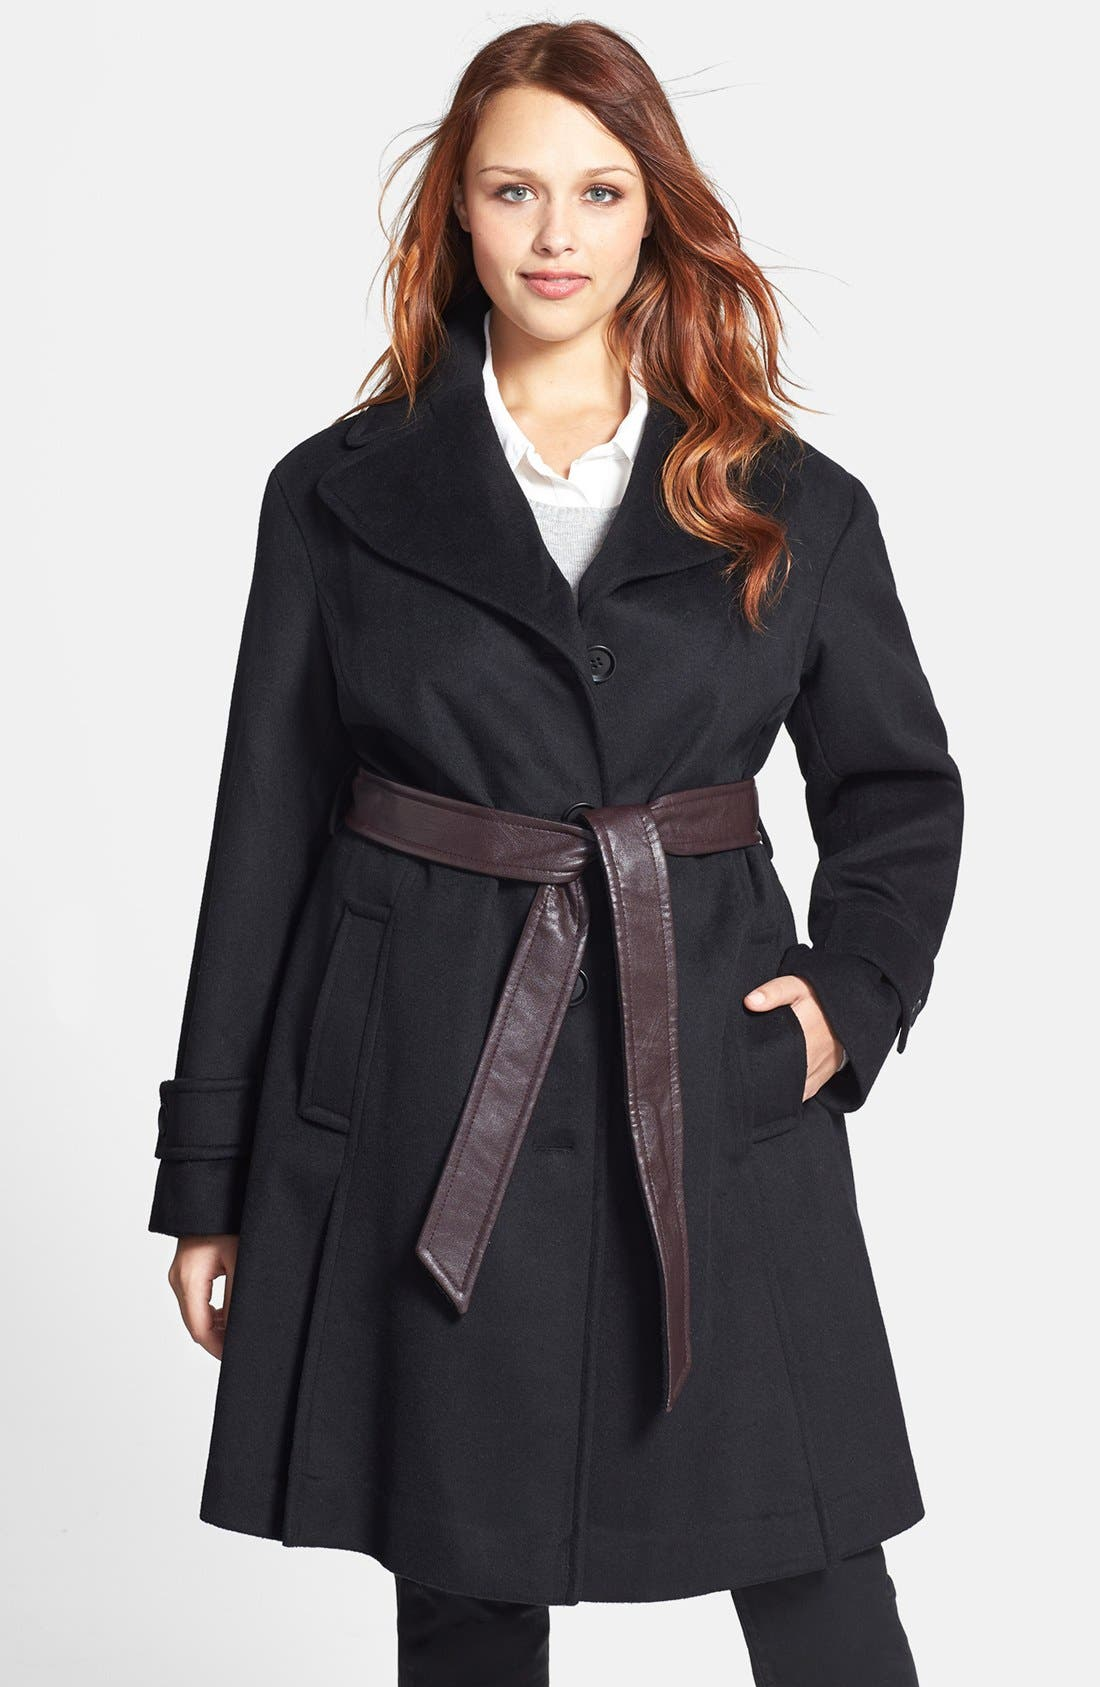 Alternate Image 1 Selected - DKNY Wool Blend Trench Coat with Faux Leather Belt (Plus Size)